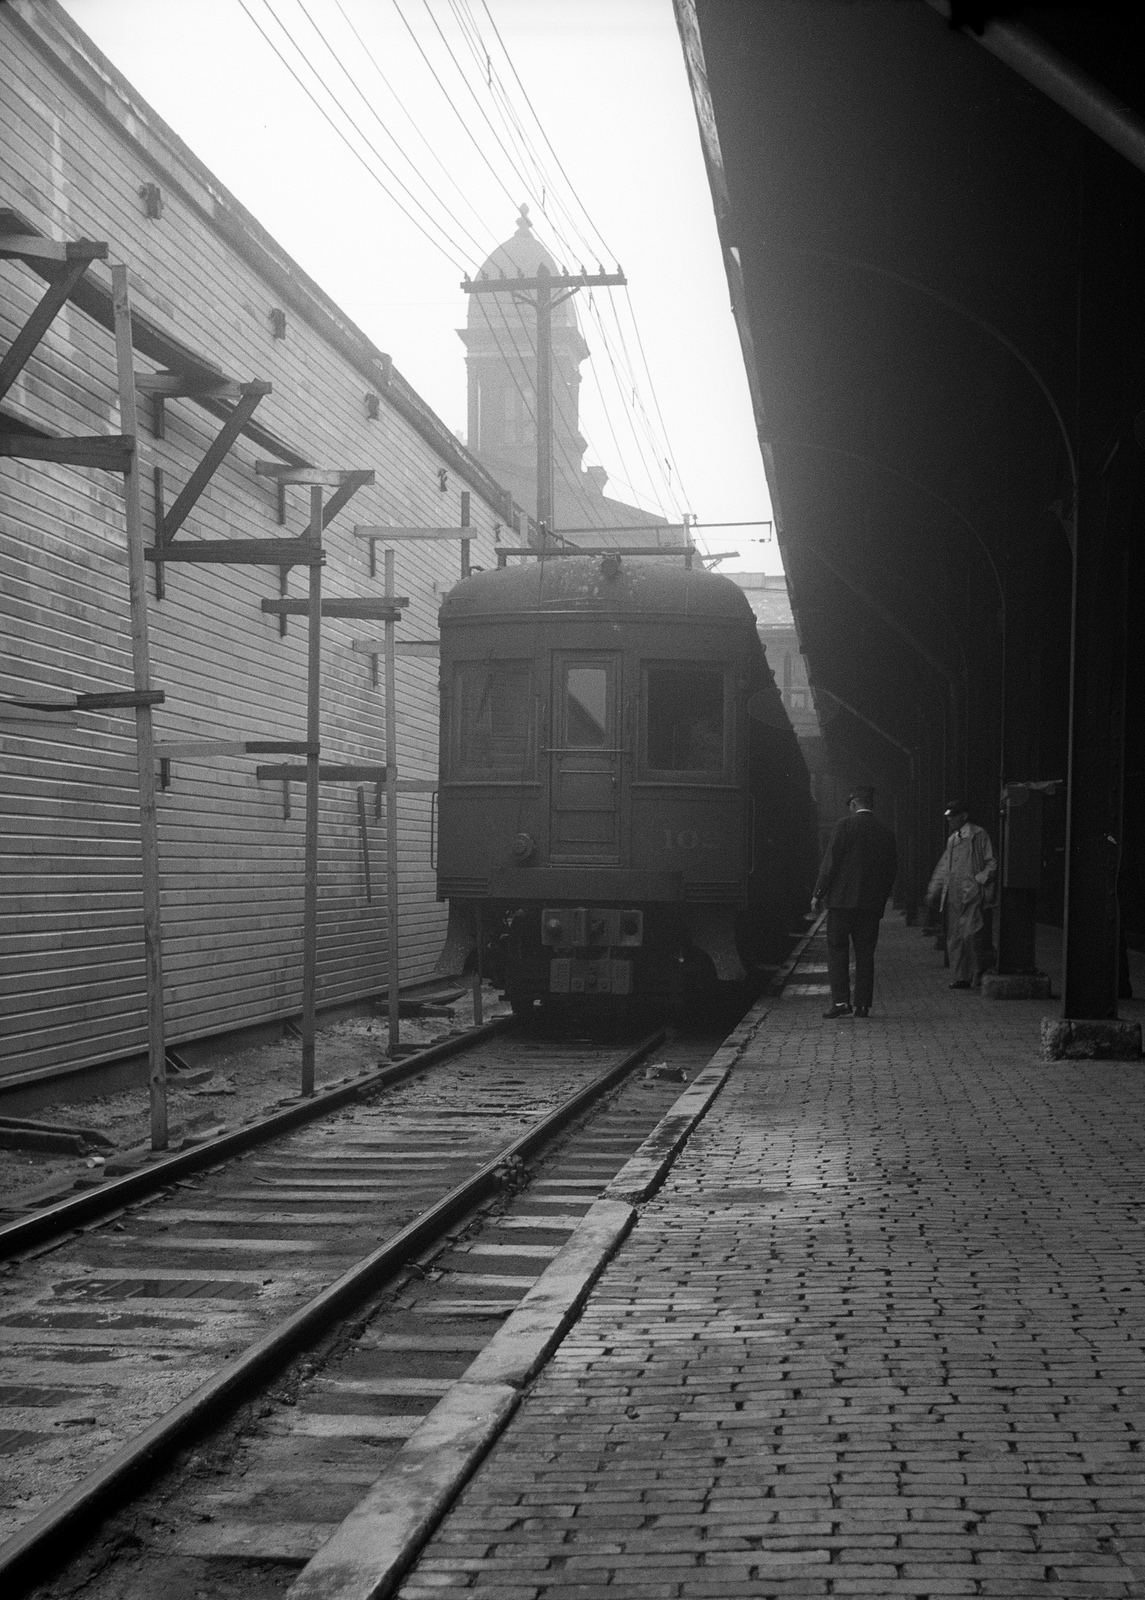 Baltimore &Annapolis Railroad Car #102 Camden Station. Baltimore, Maryland Date:1940's. Source: Hugh Hayes Collection.